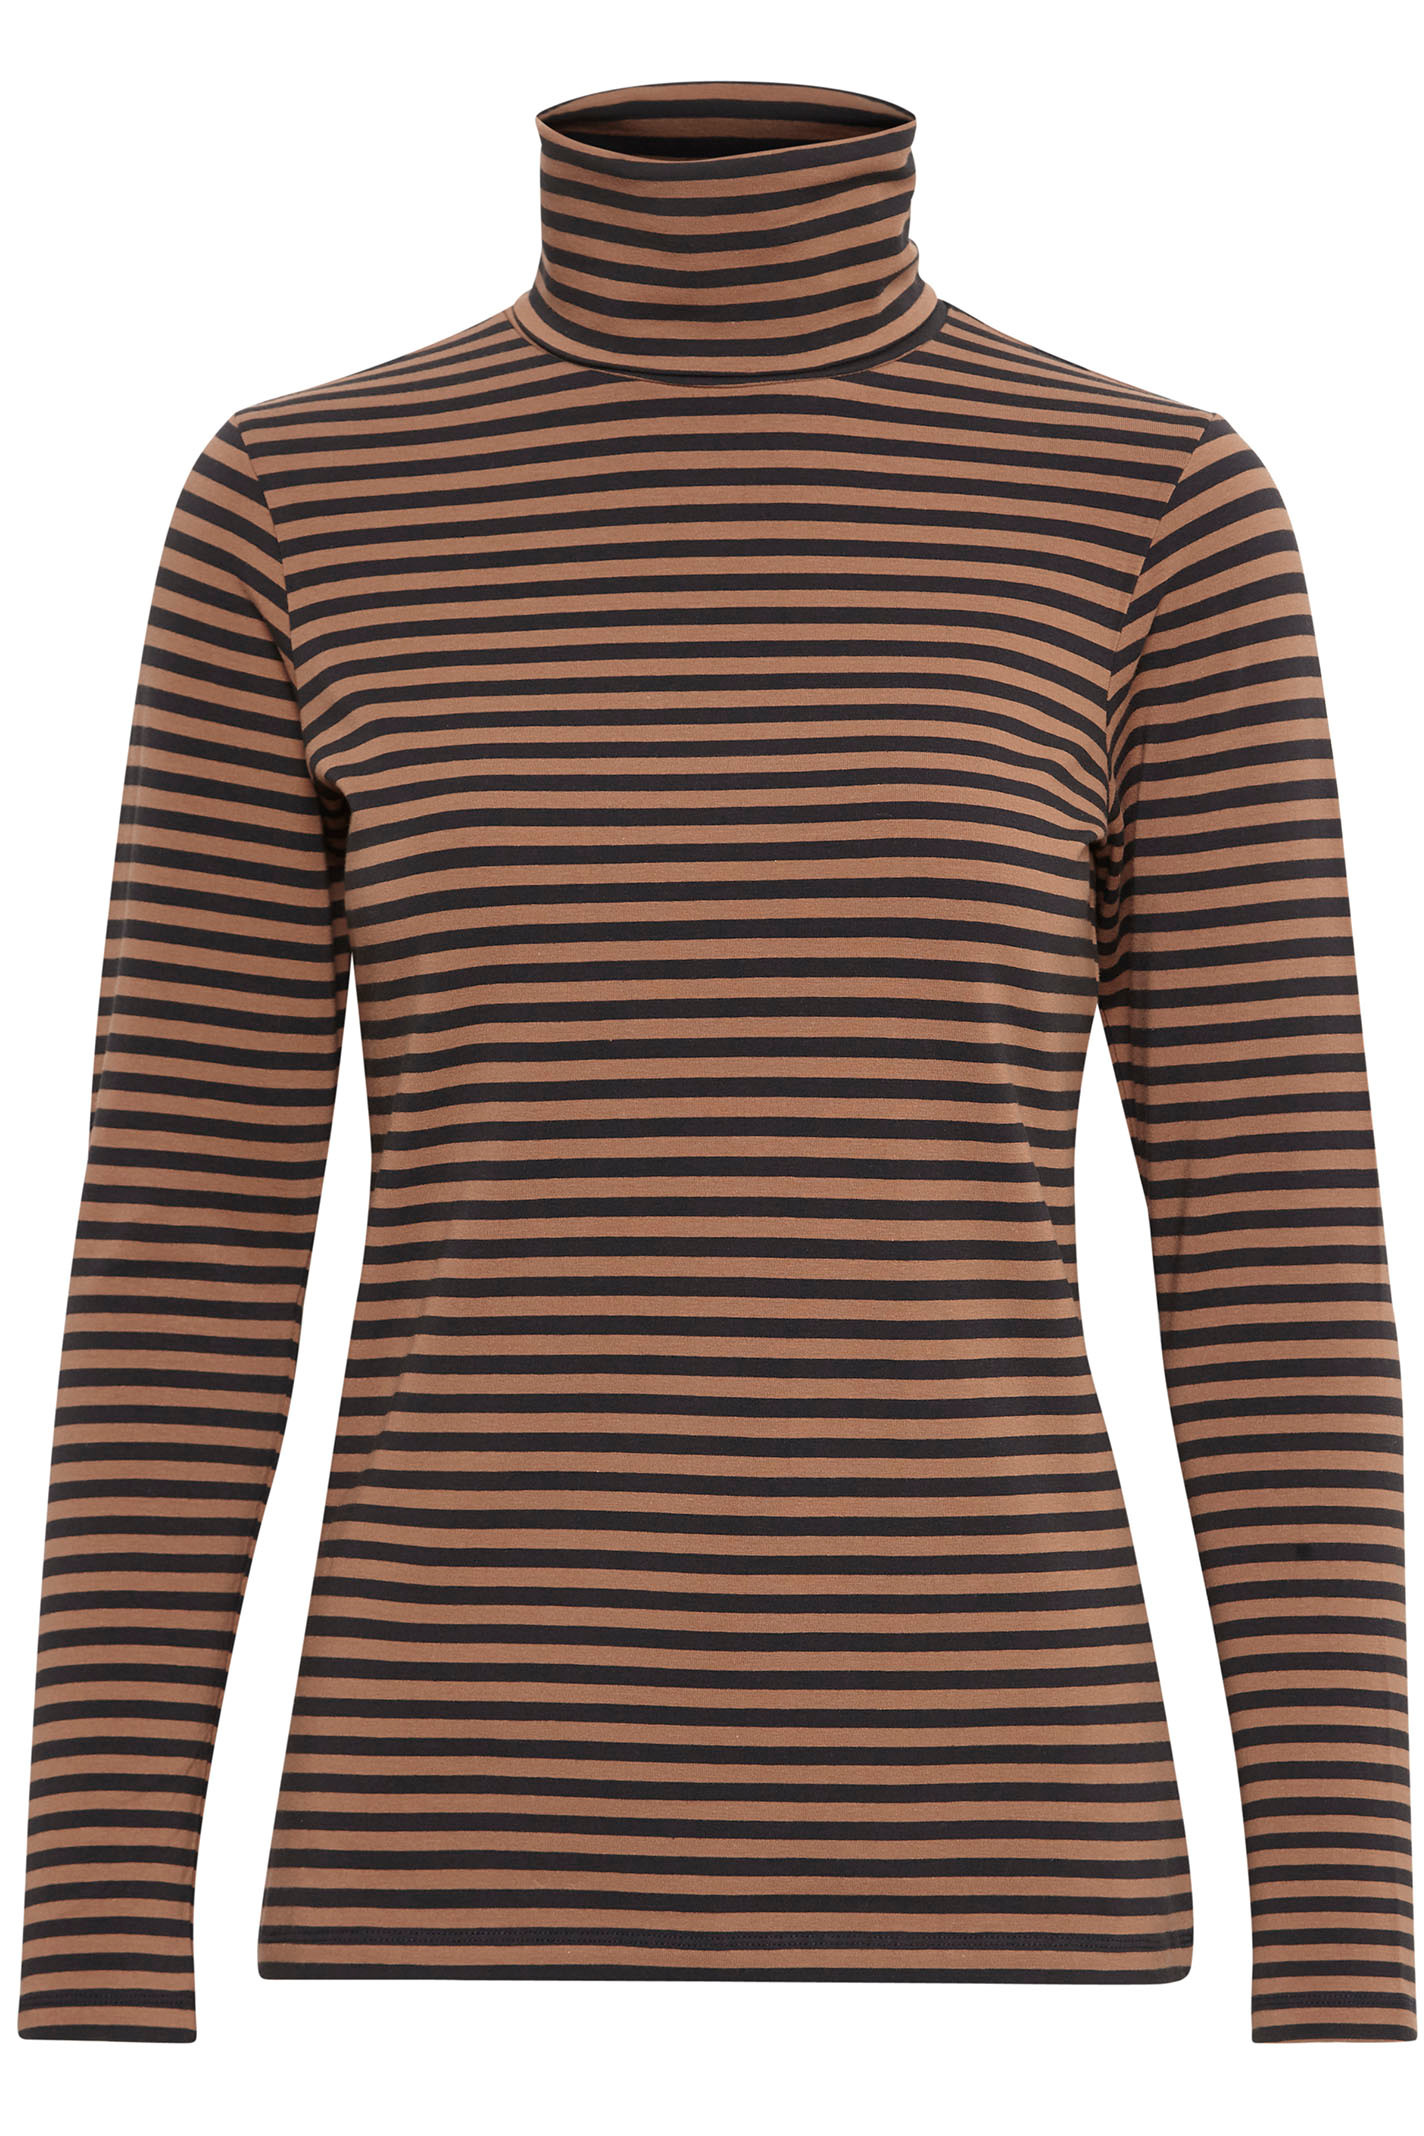 PART TWO 30304500 Striped jersey, Brown.